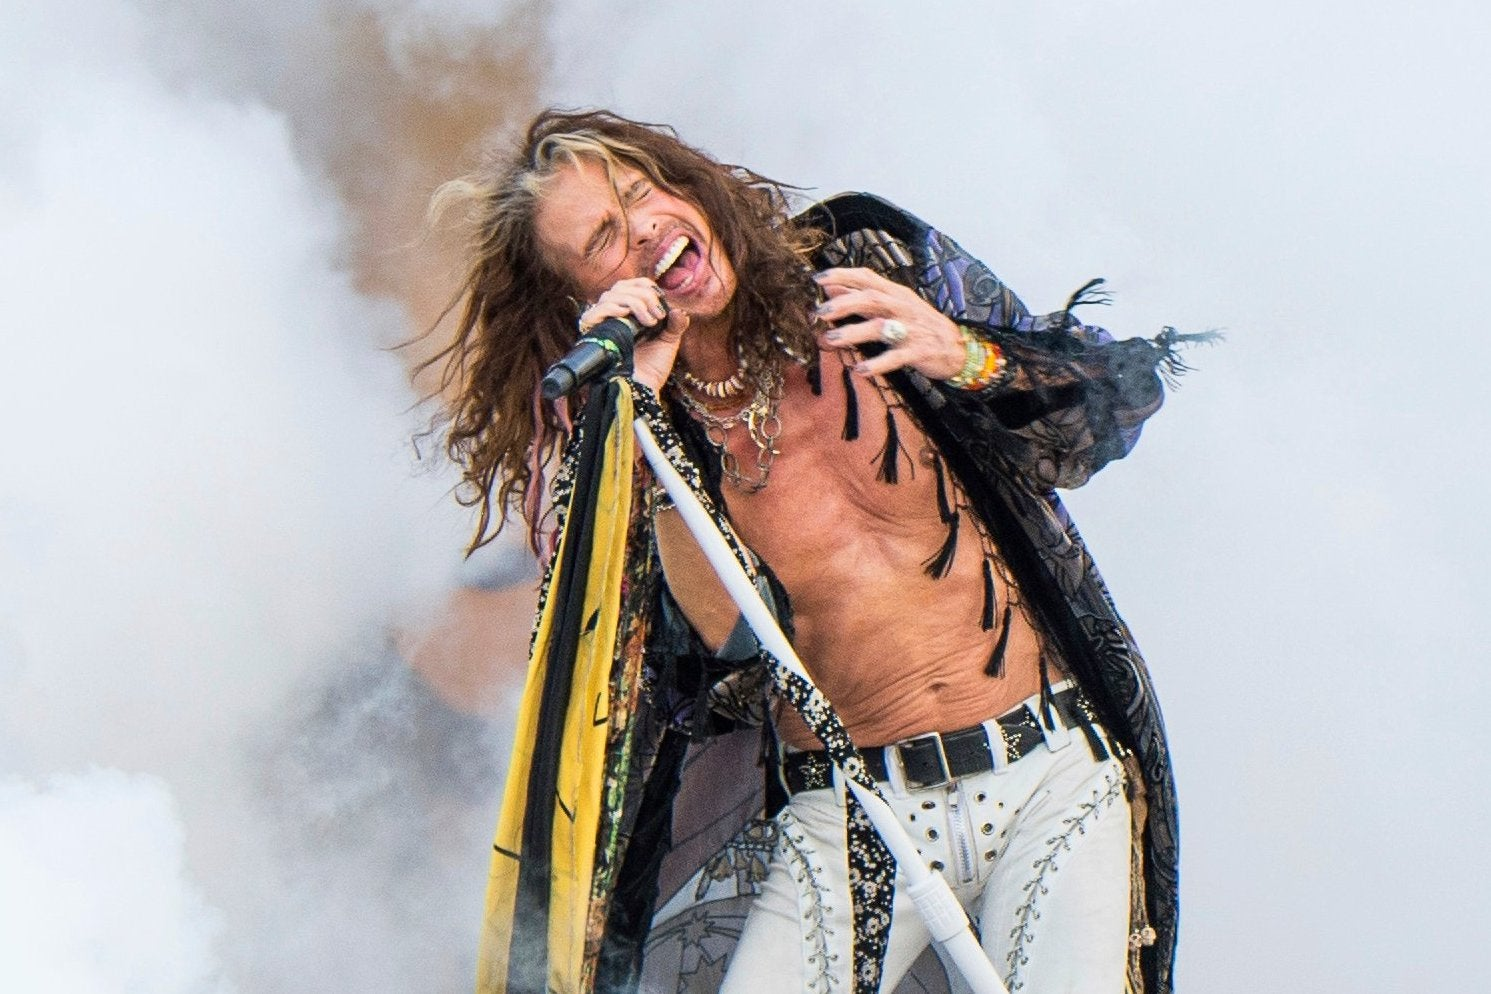 Glastonbury 2020: Aerosmith appear to confirm they're playing festival